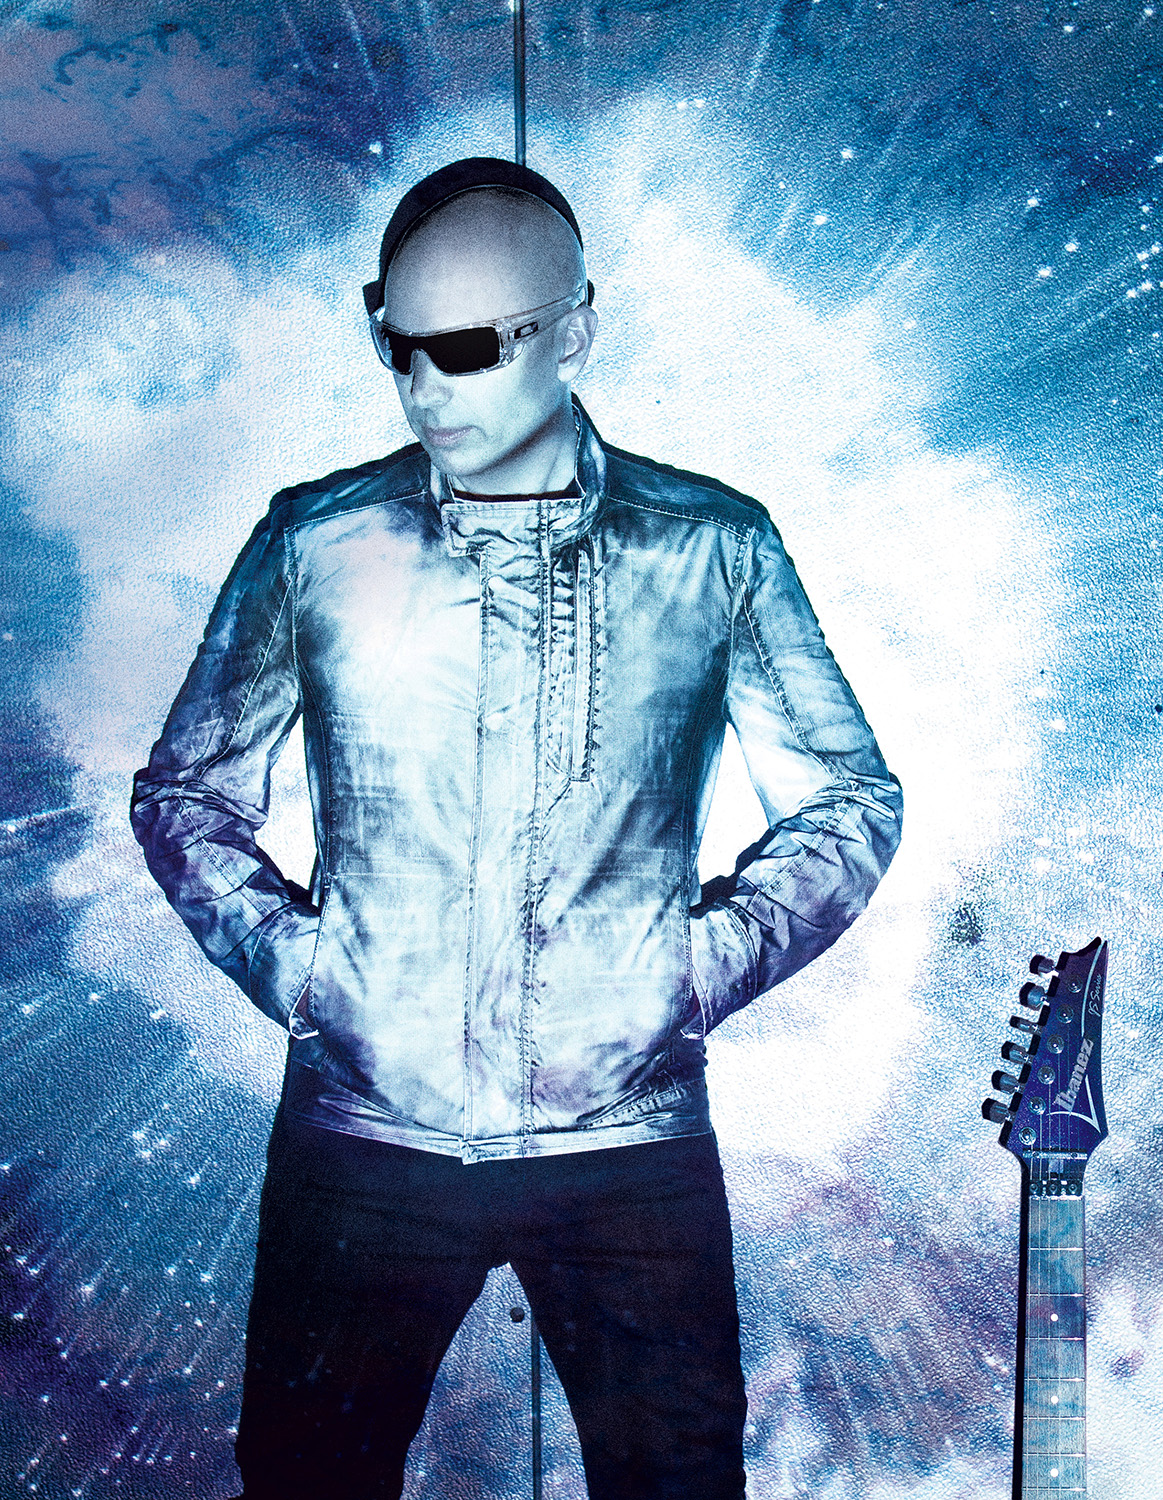 guitar virtuoso joe satriani bringing 39 surfing to shockwave tour 39 to the fitzgerald theater on. Black Bedroom Furniture Sets. Home Design Ideas